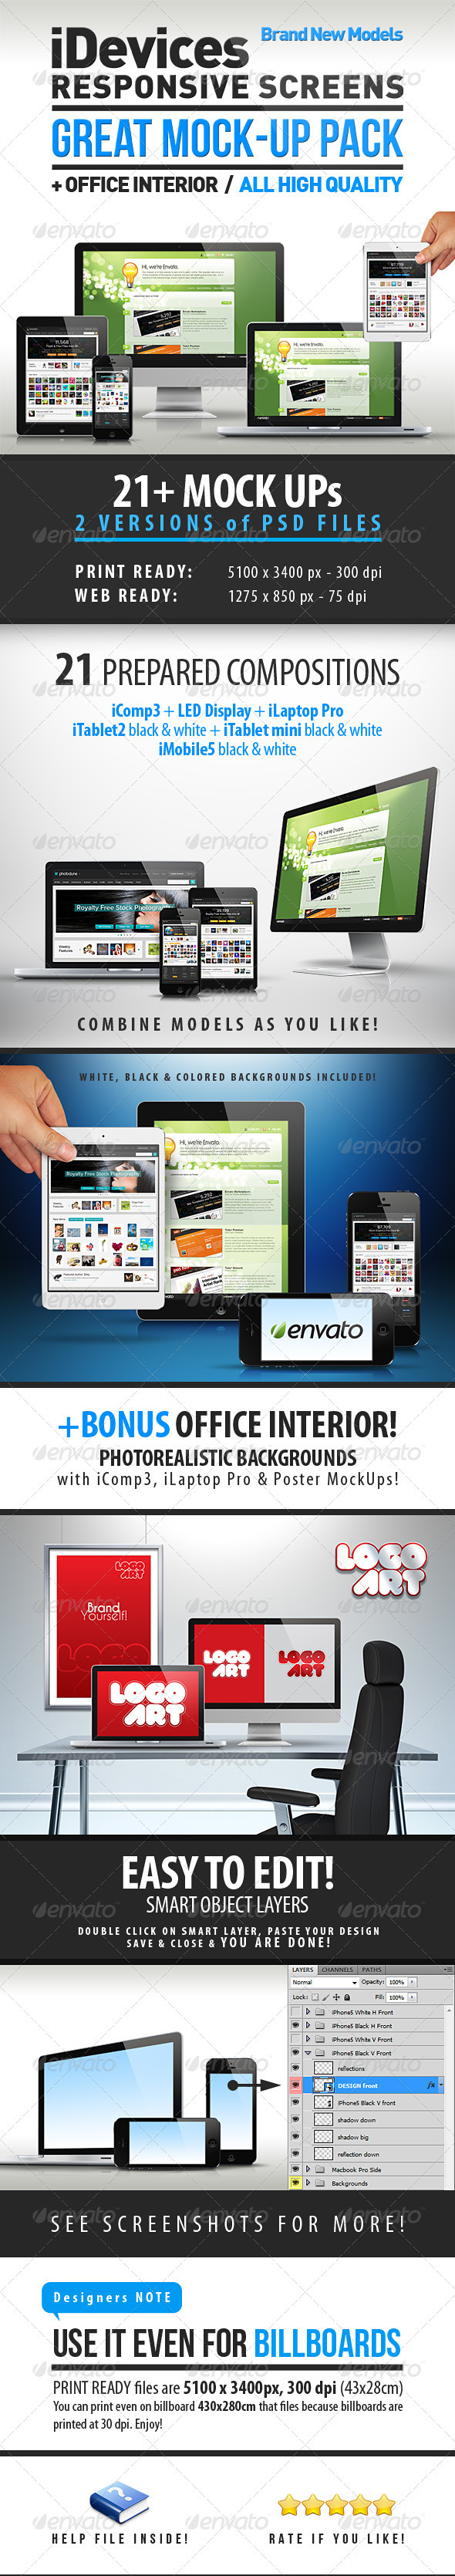 GraphicRiver iDevices Responsive Great Mock-Up 3864479